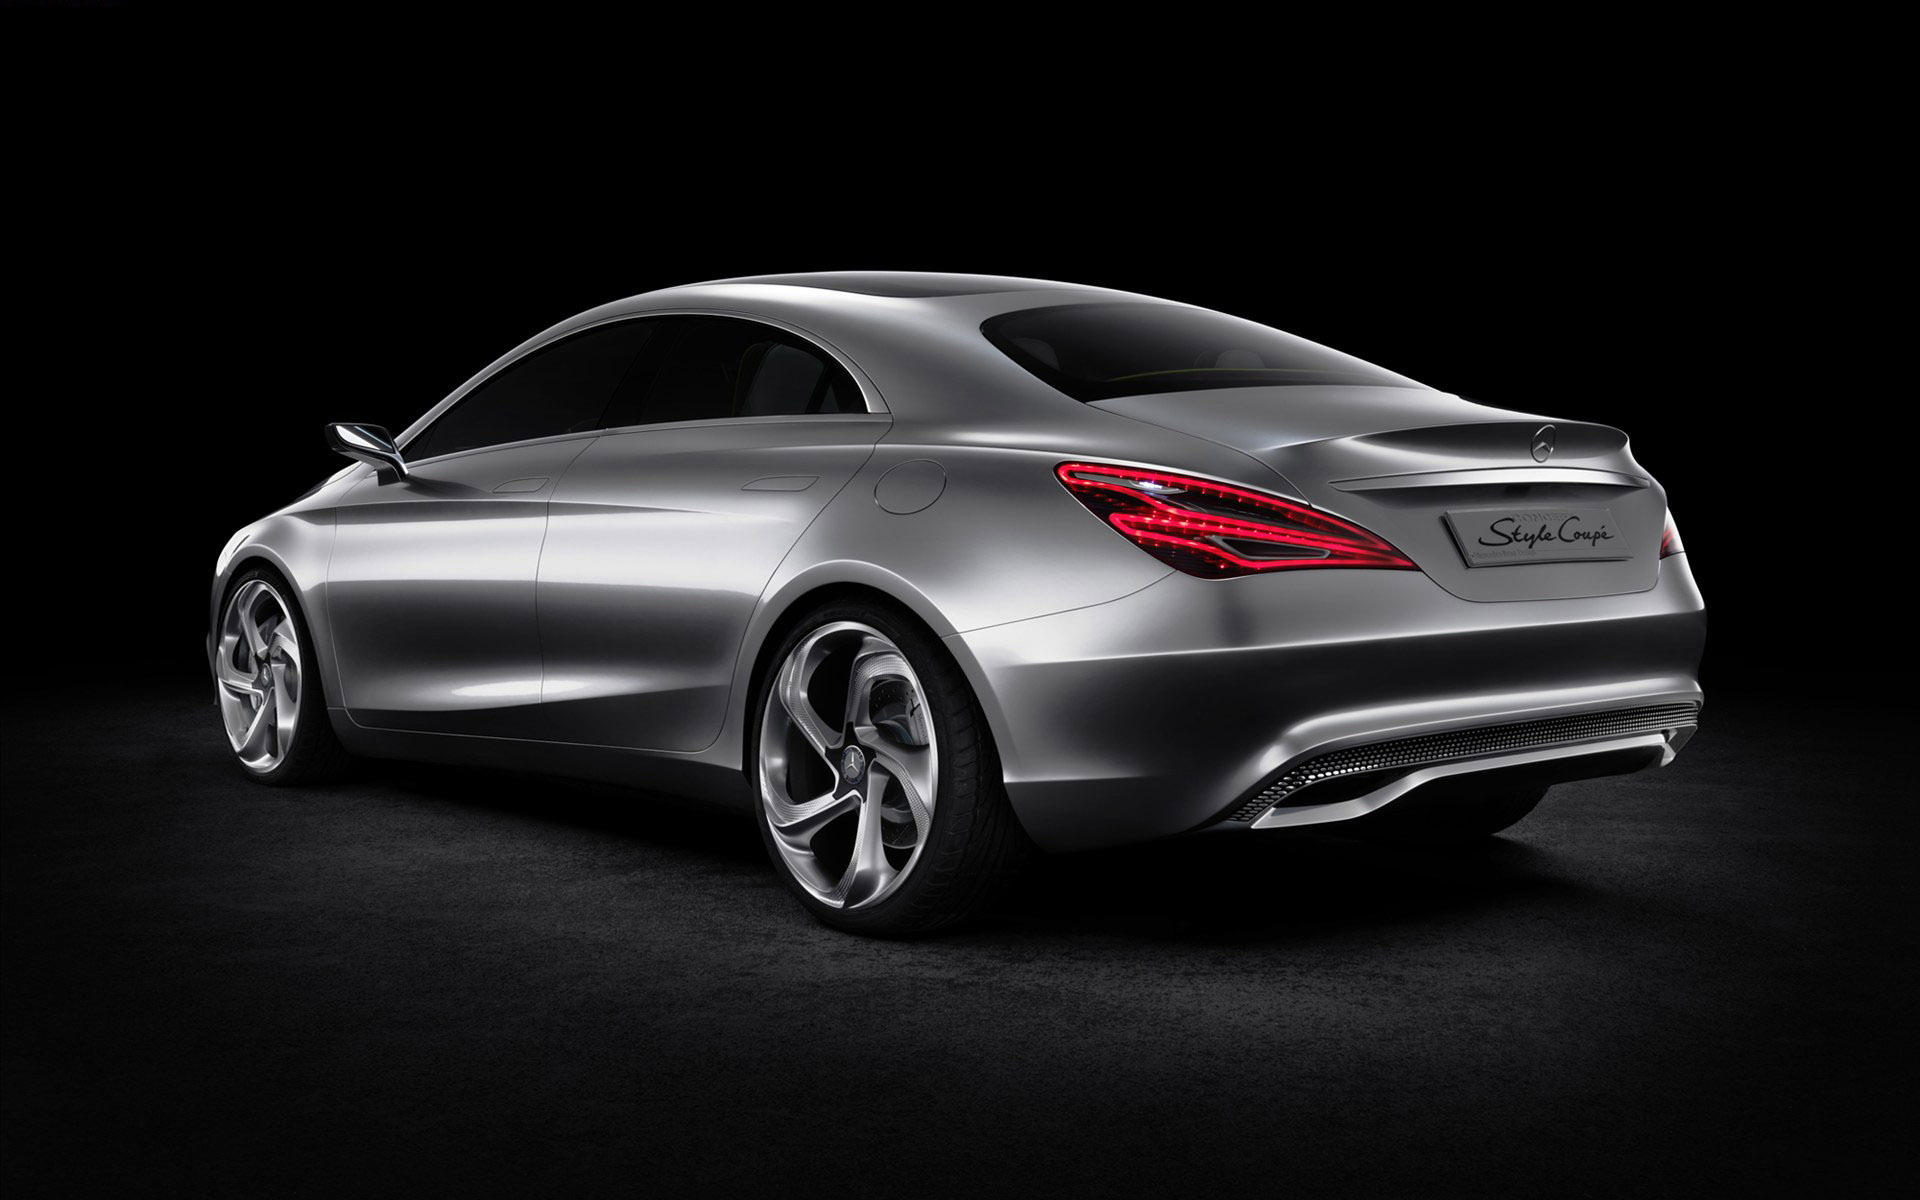 The Benz Coupe concept car 31123